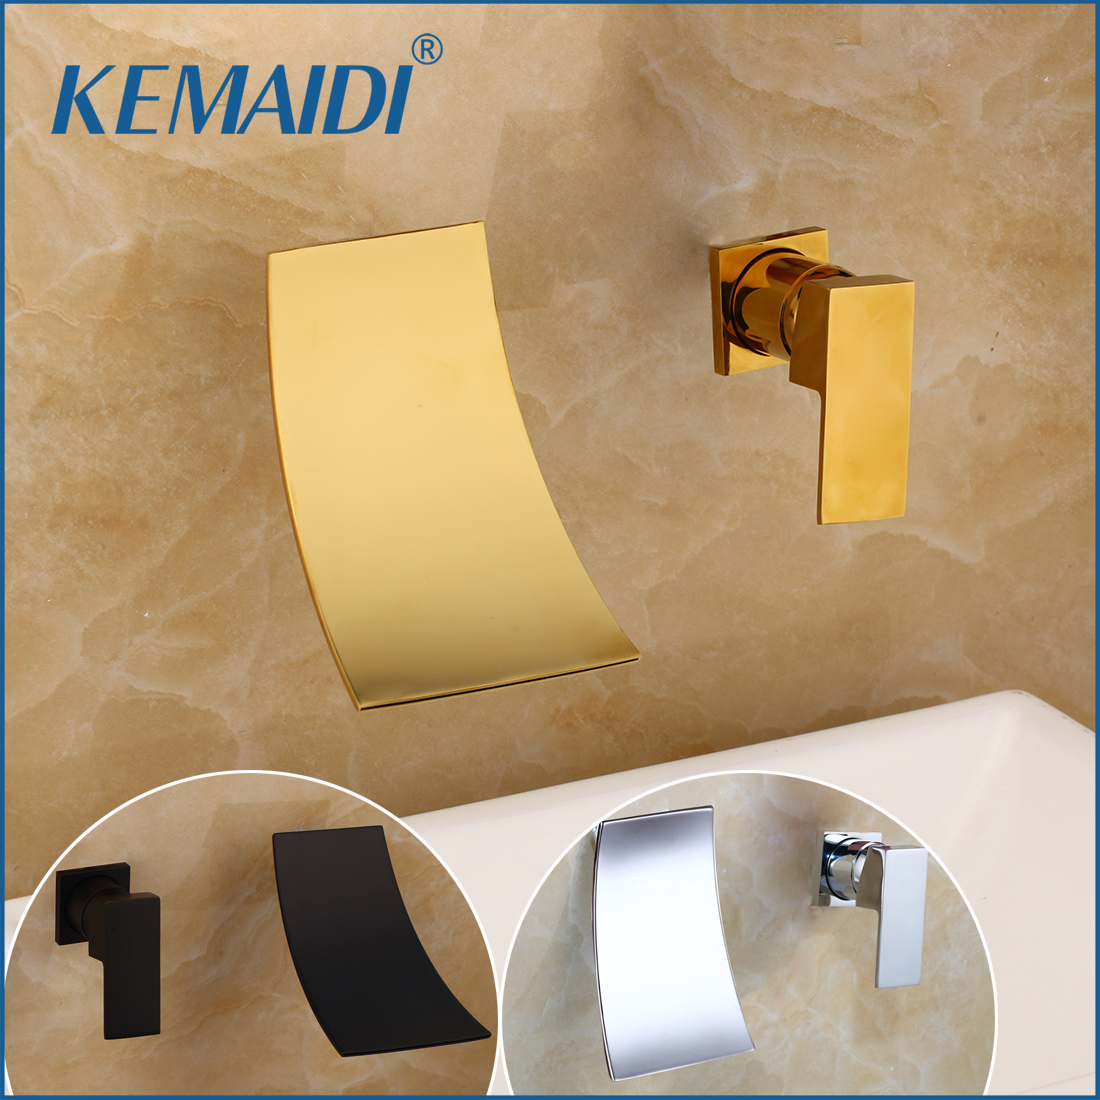 KEMAIDI Waterfall Spout Basin Faucet Single Lever Chrome Gold Bathroom Washing Basin Tap Widespread Lavatory Sink